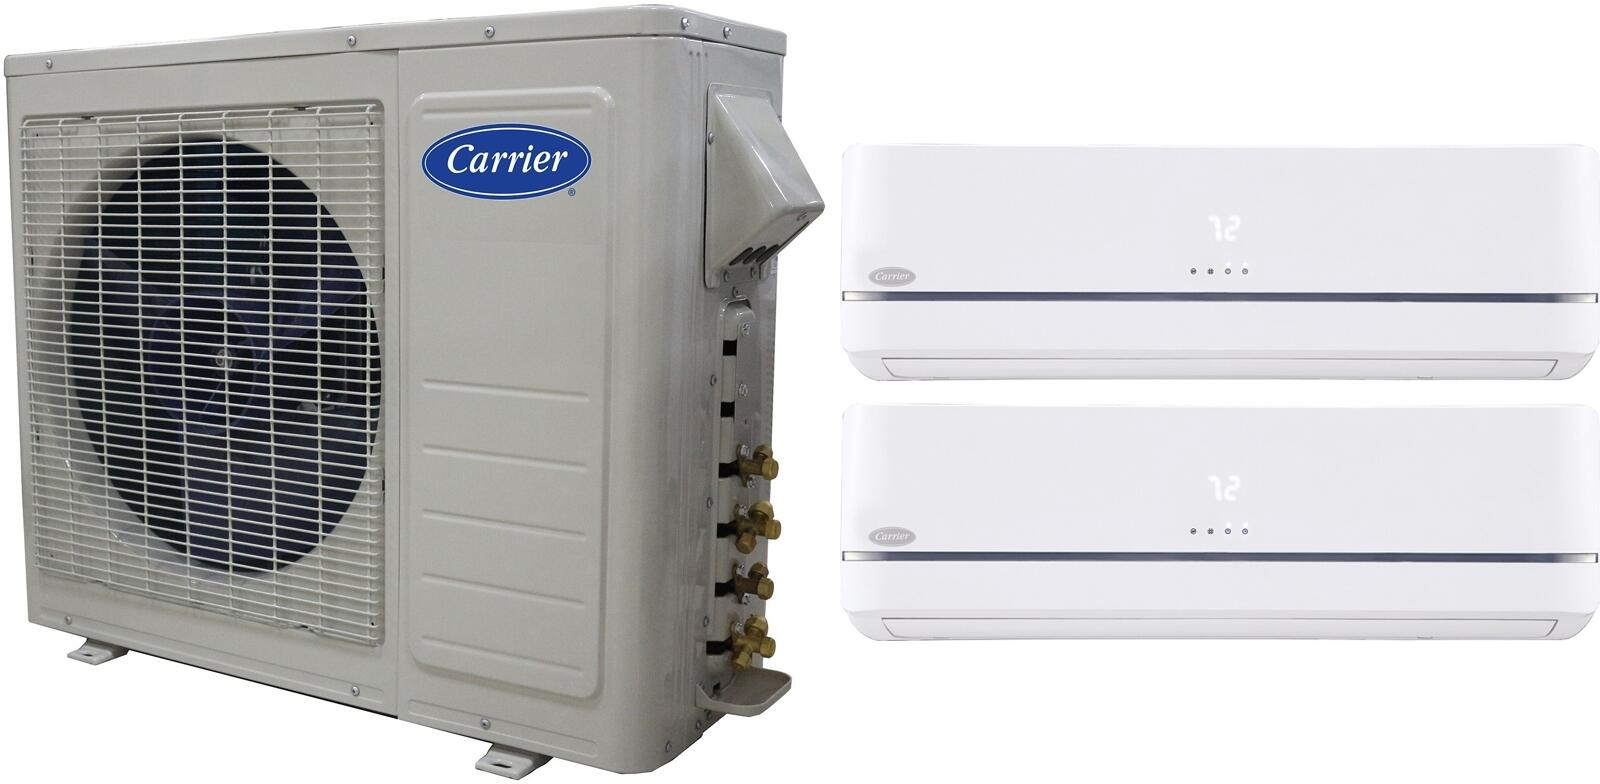 carrier air conditioner service manual pdf